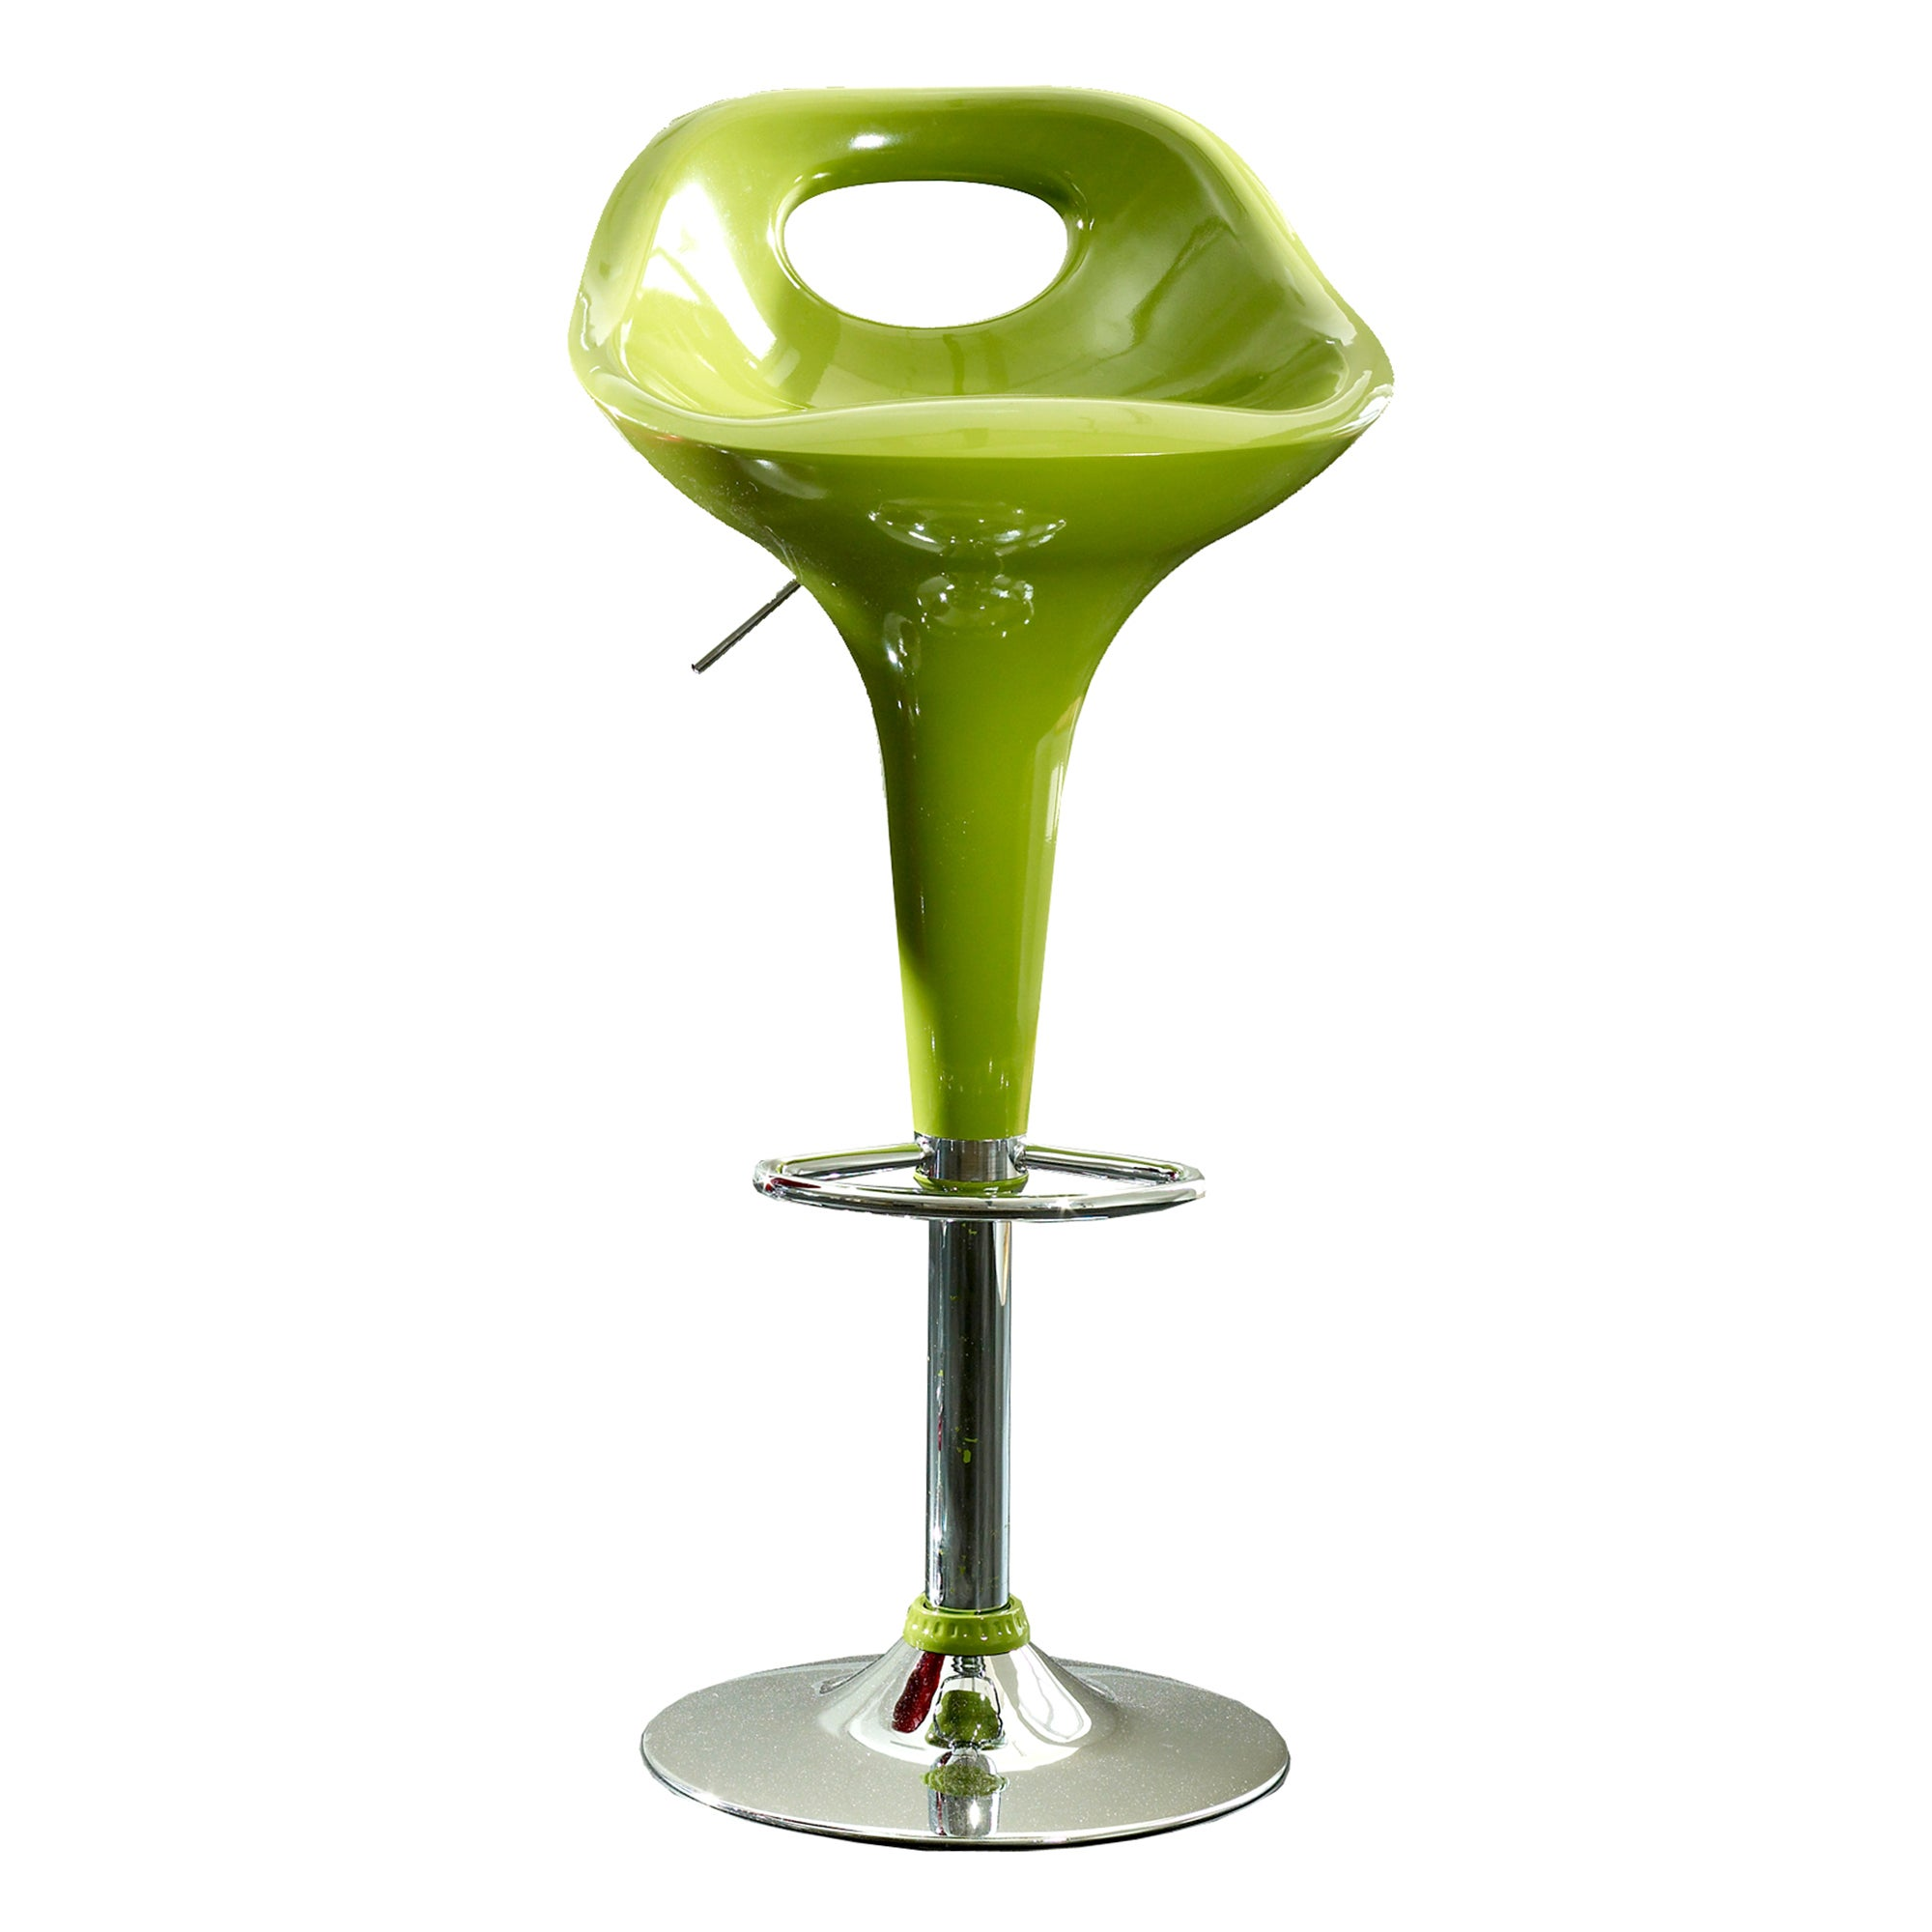 Green Comet Gas Lift Bar Stool